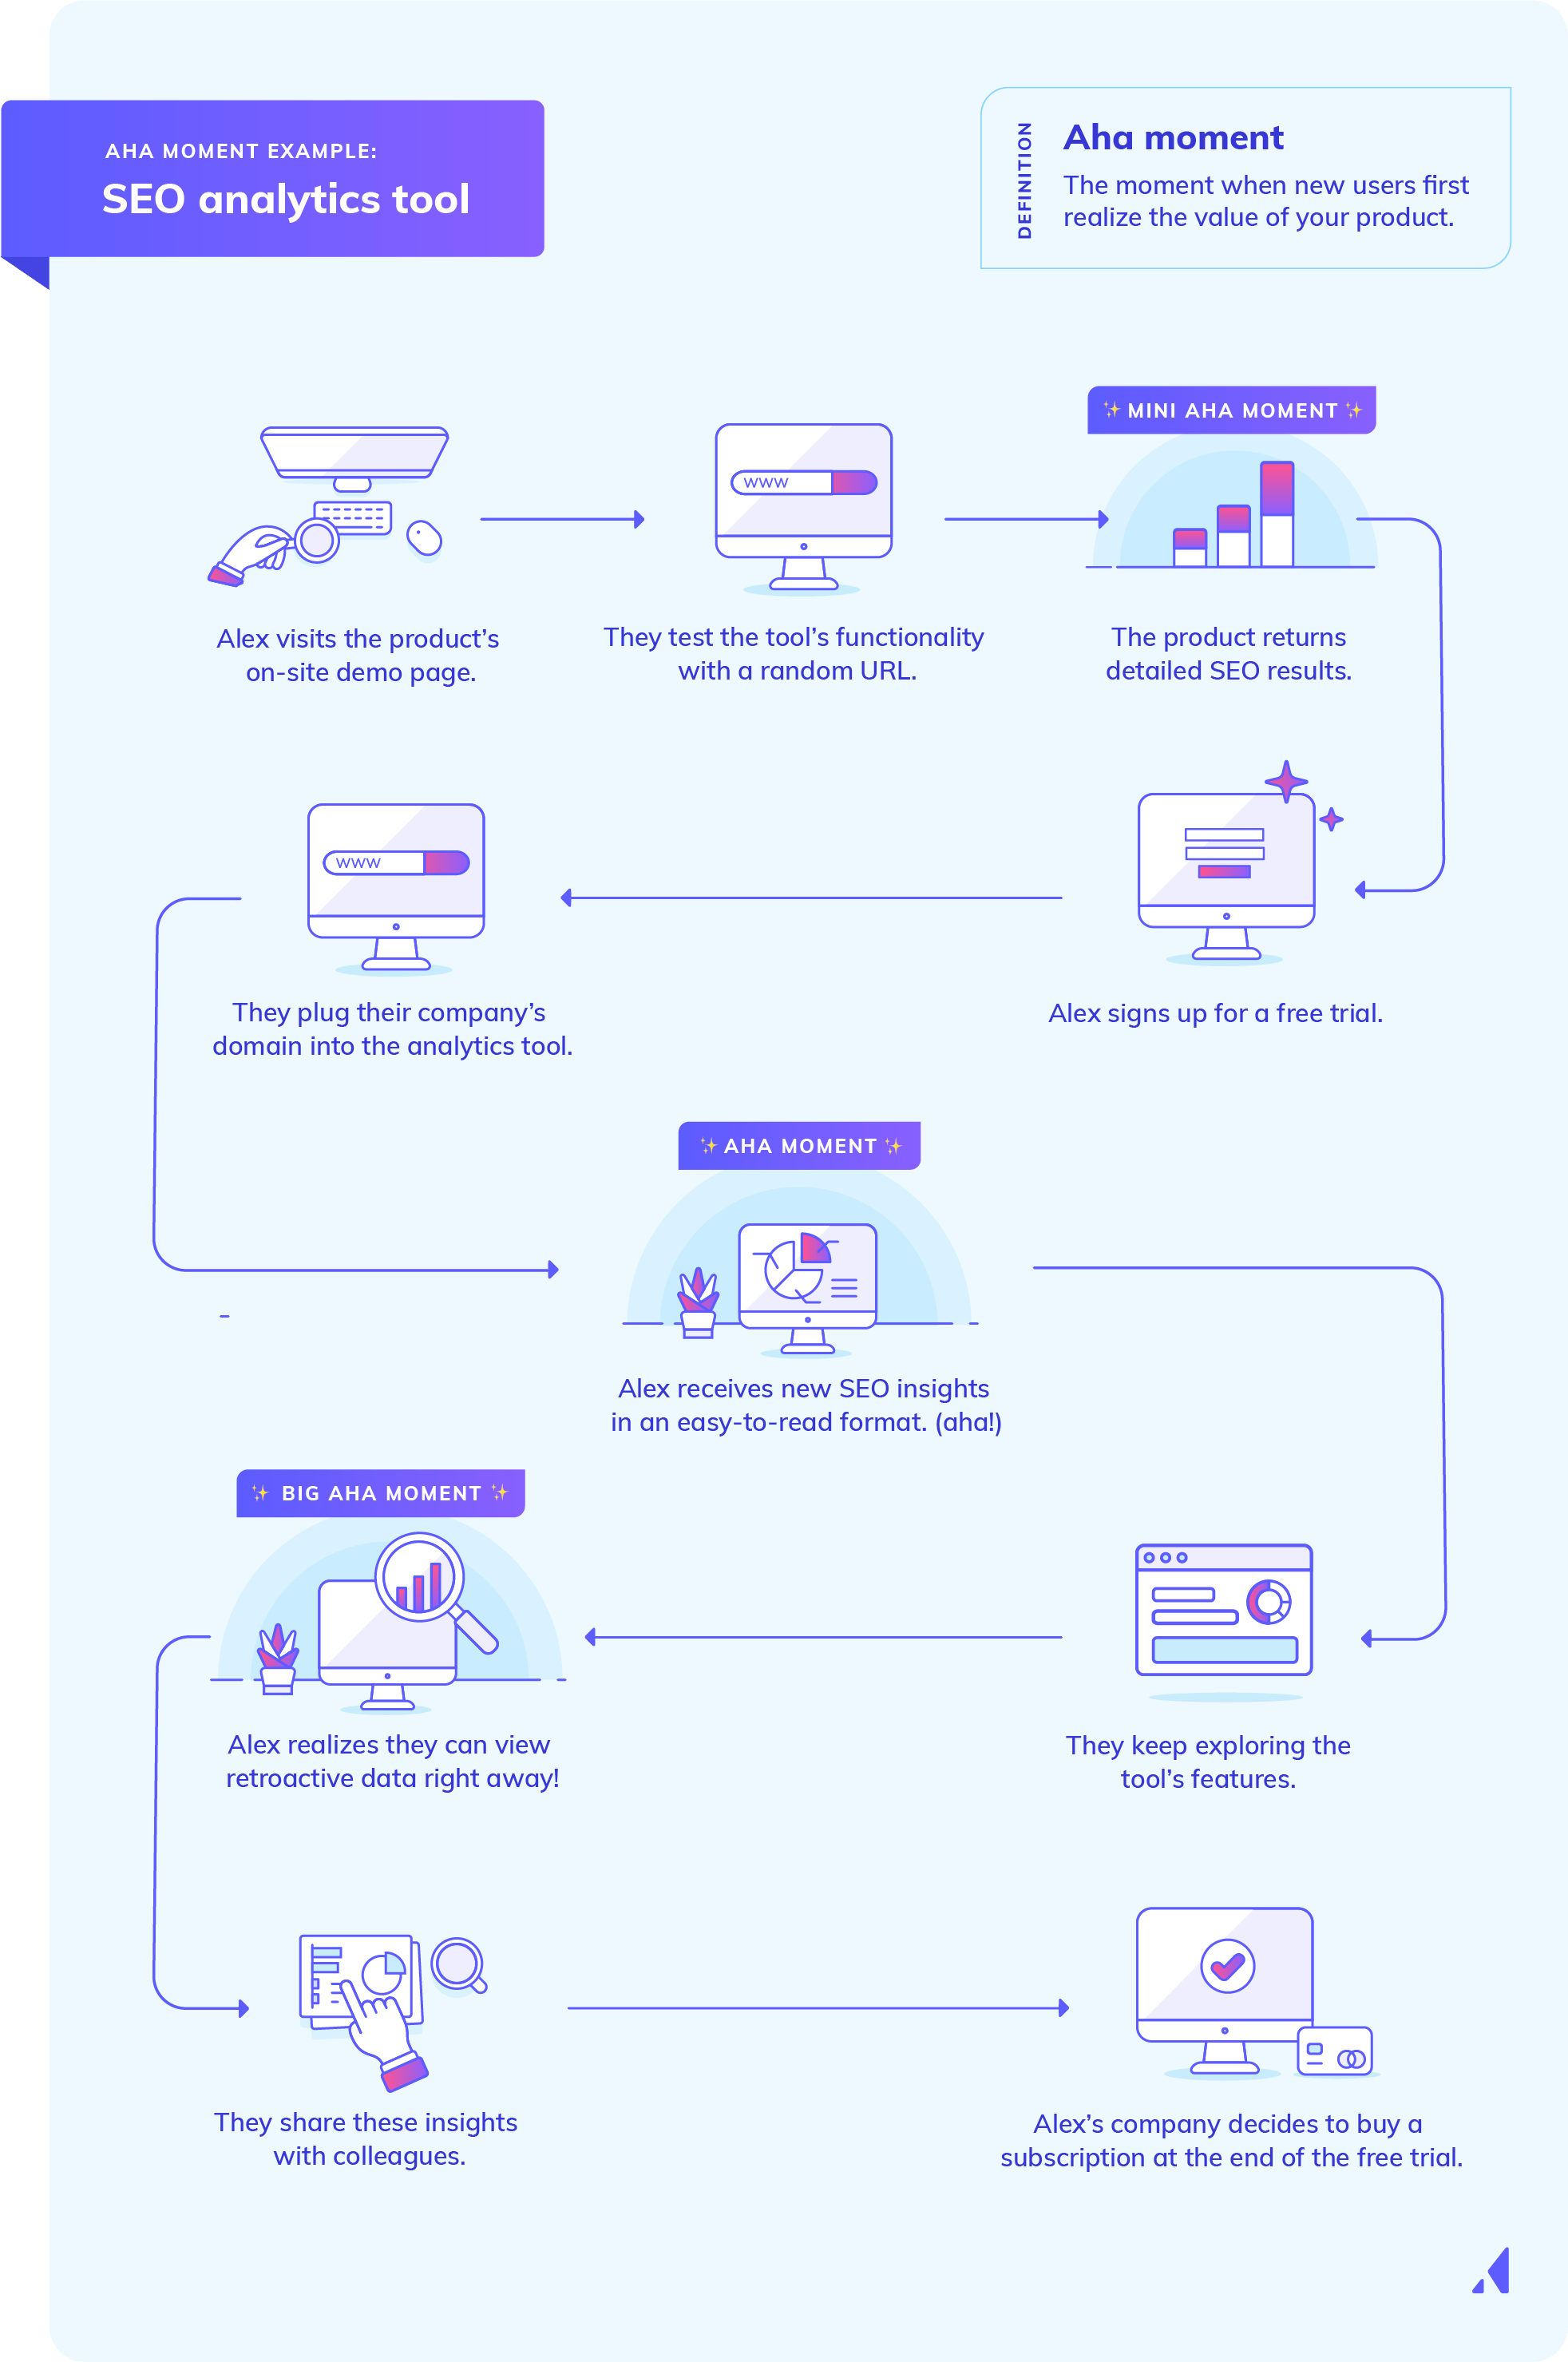 aha moment example saas analytics tool with a complex user journey